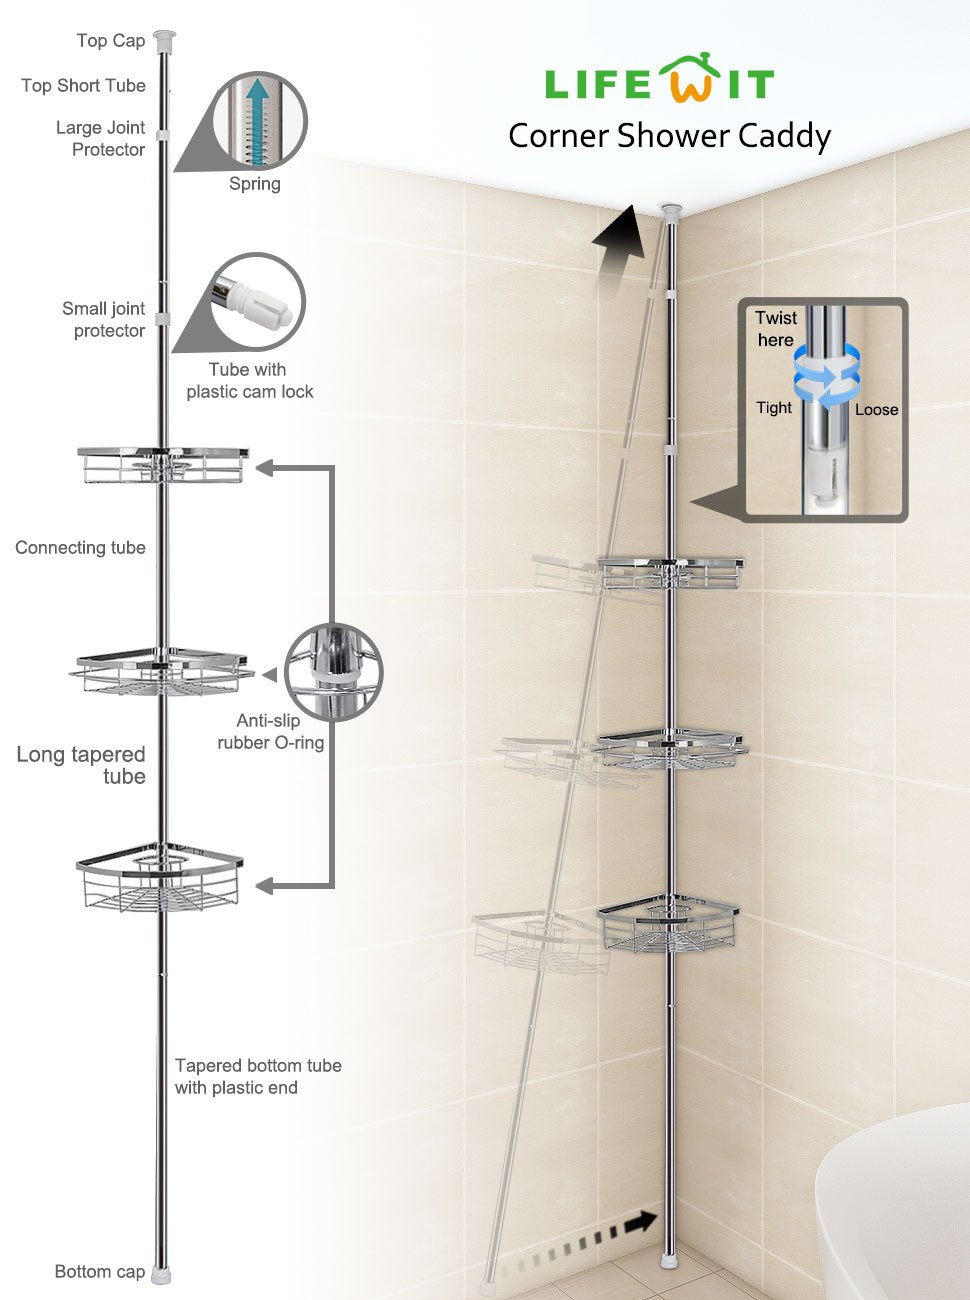 Amazon.com: Lifewit Corner Shower Caddy 3 Tier Adjustable Bathroom ...